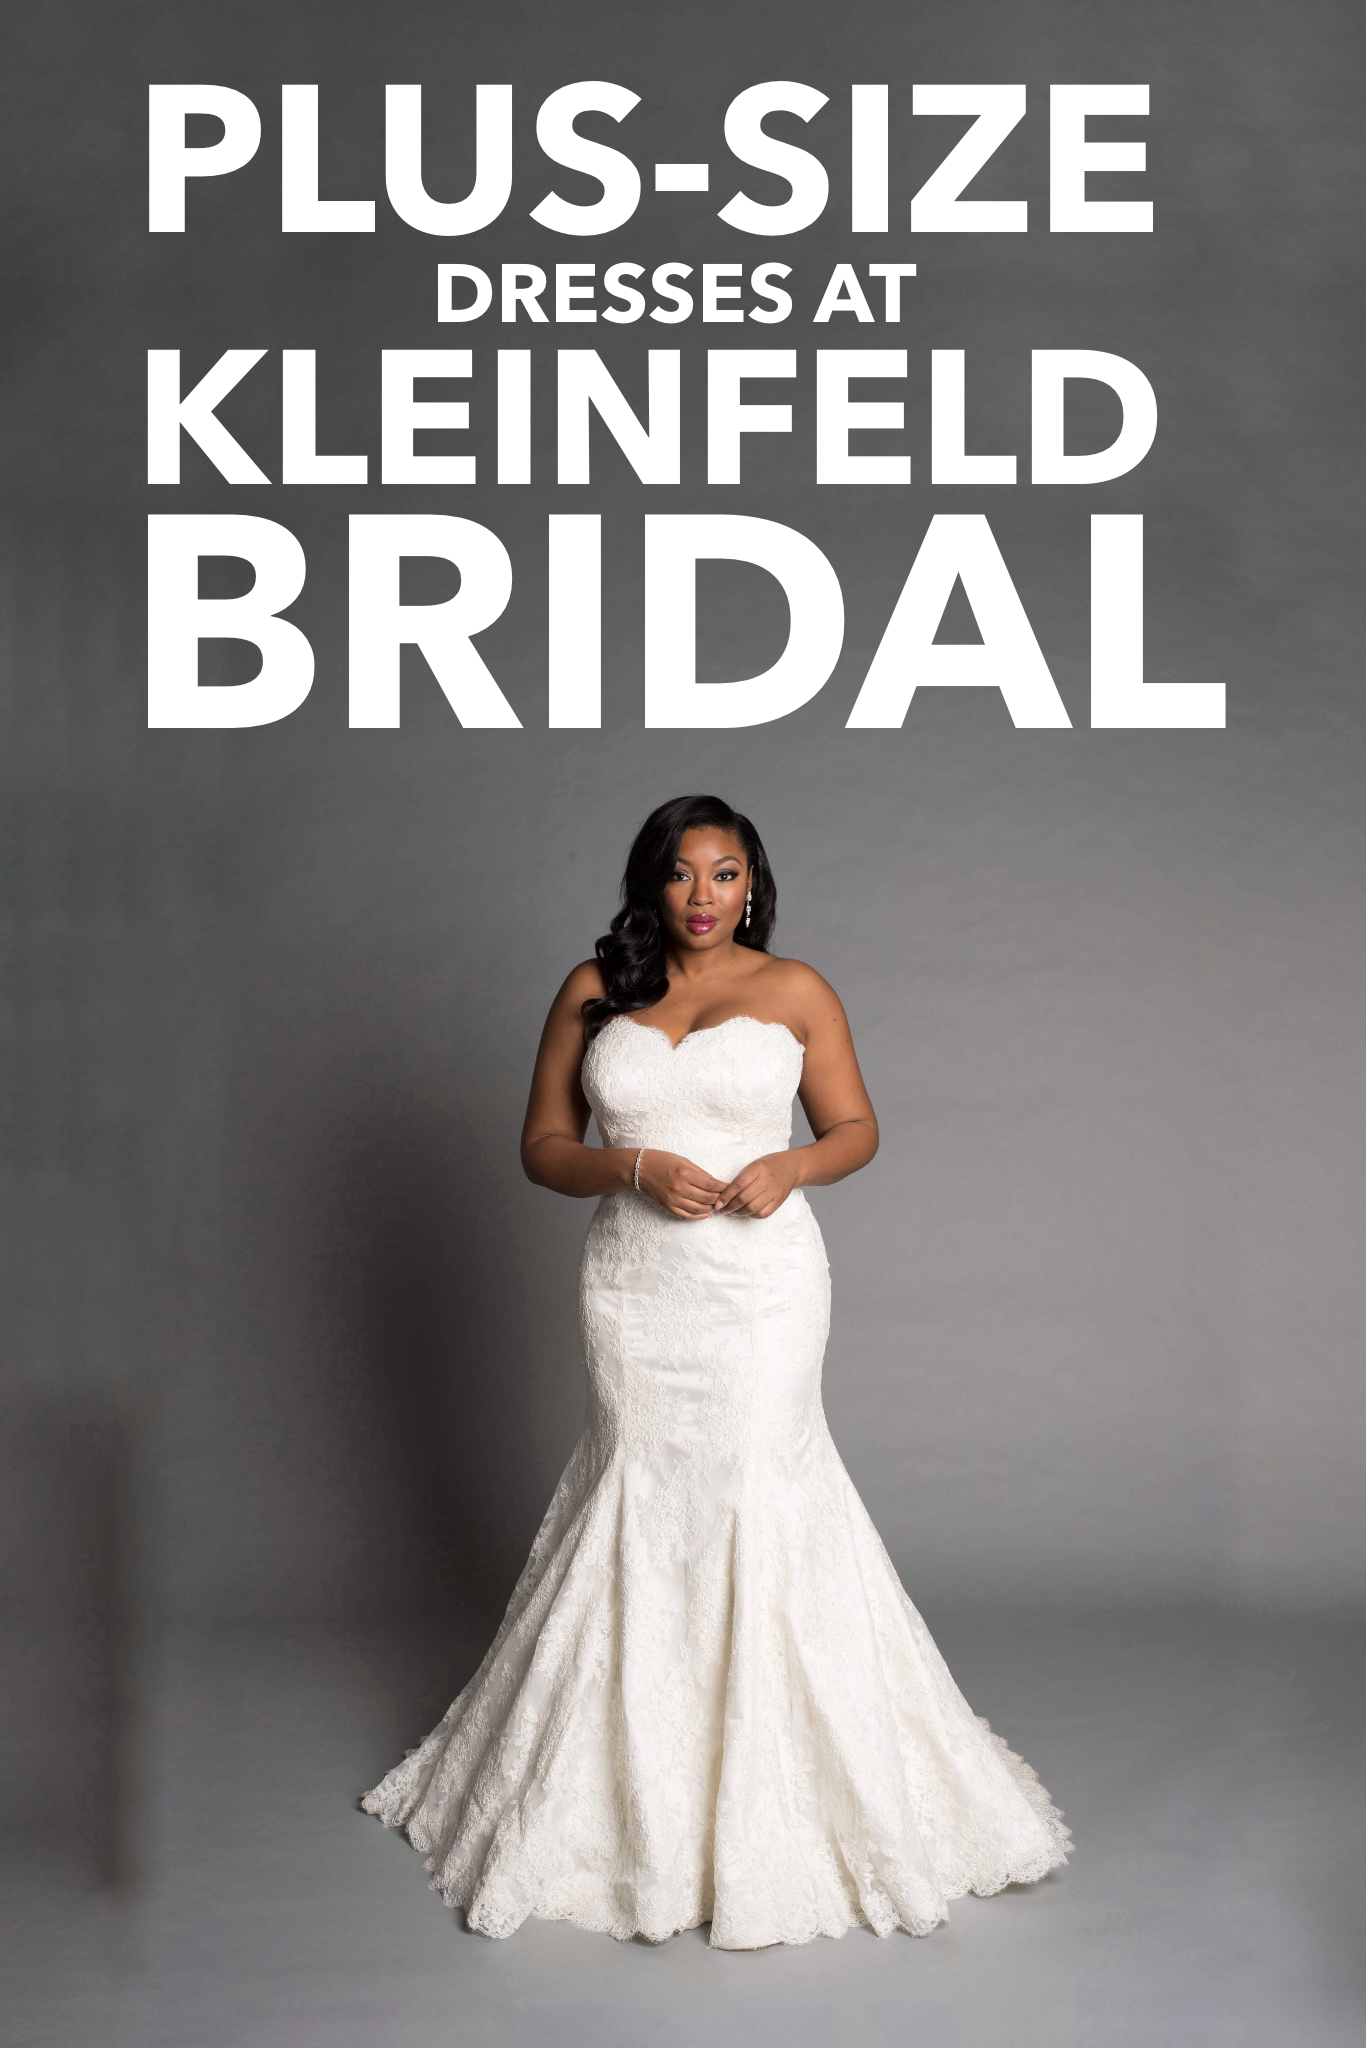 7056e15adc1 200+ dresses available in plus-size available at Kleinfeld. Designers  include Pnina Tornai